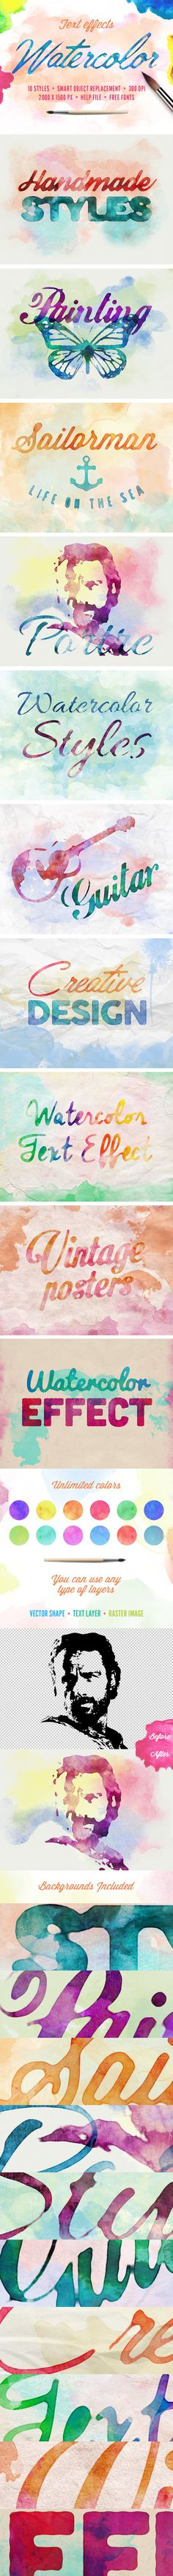 Watercolor Text Effects for Photoshop. Download here: http://graphicriver.net/item/watercolor-text-effects/11199799?ref=ksioks